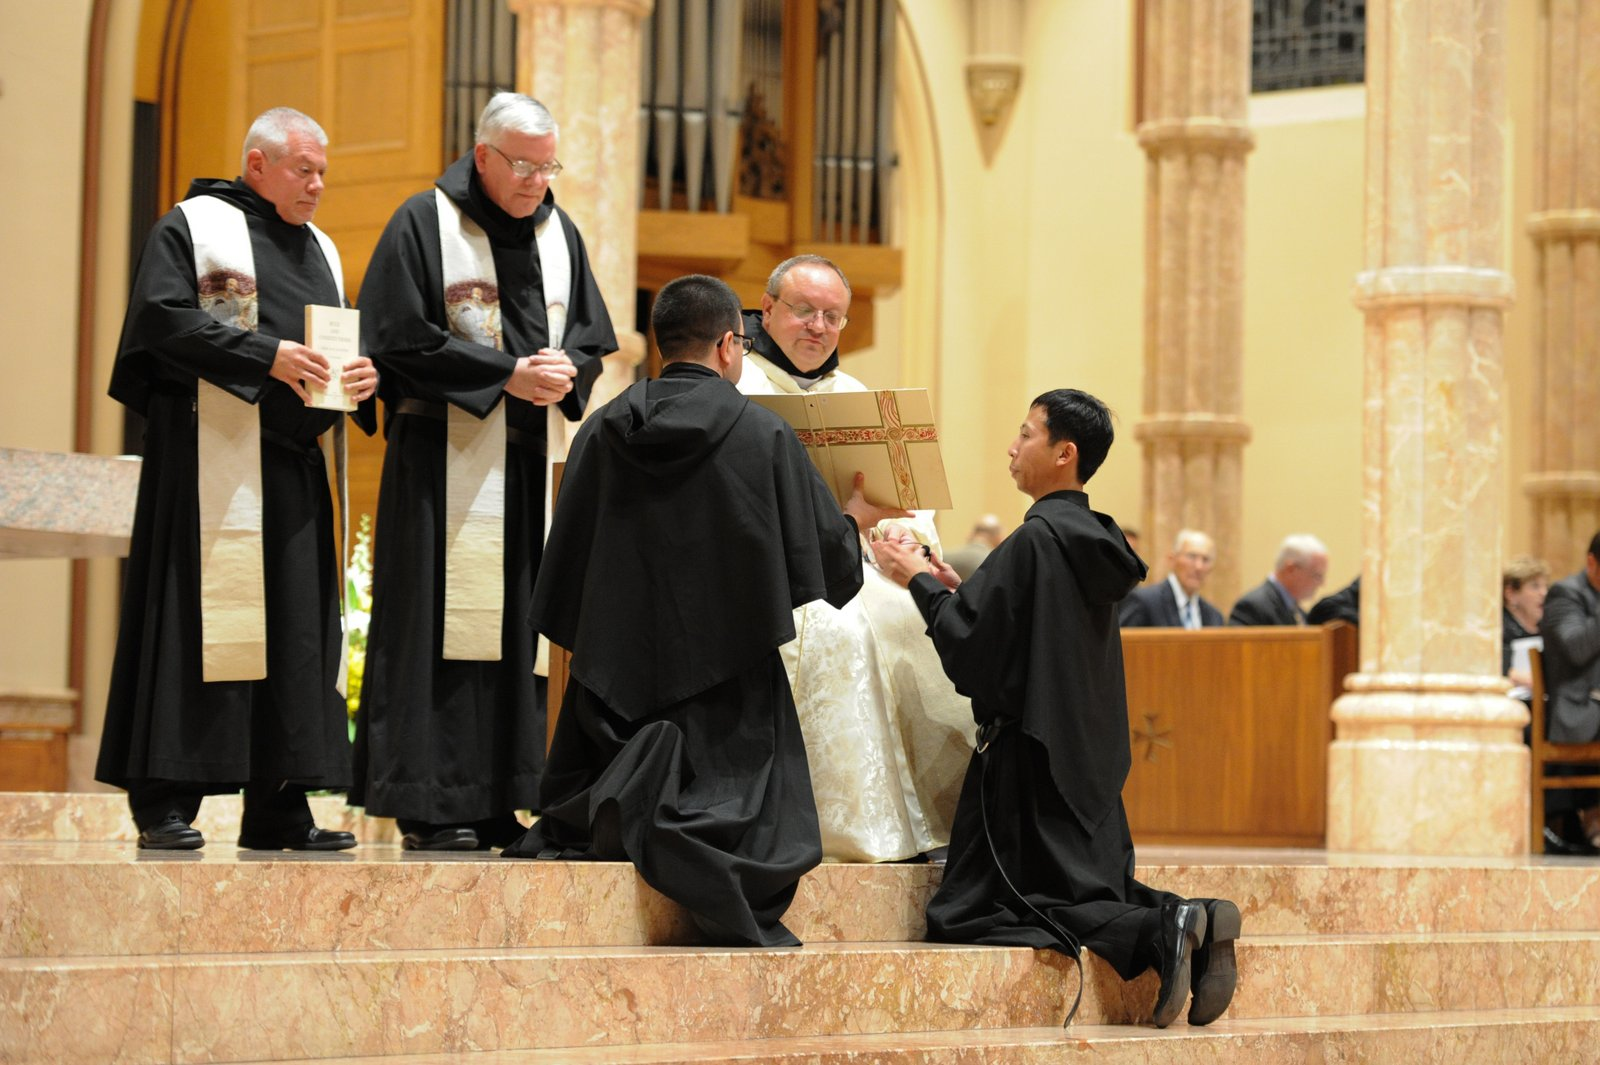 Brother Richie Mercado, O.S.A., professed his solemn vows in the Augustinian Order at Holy Name Catehdral on August 27, 2015